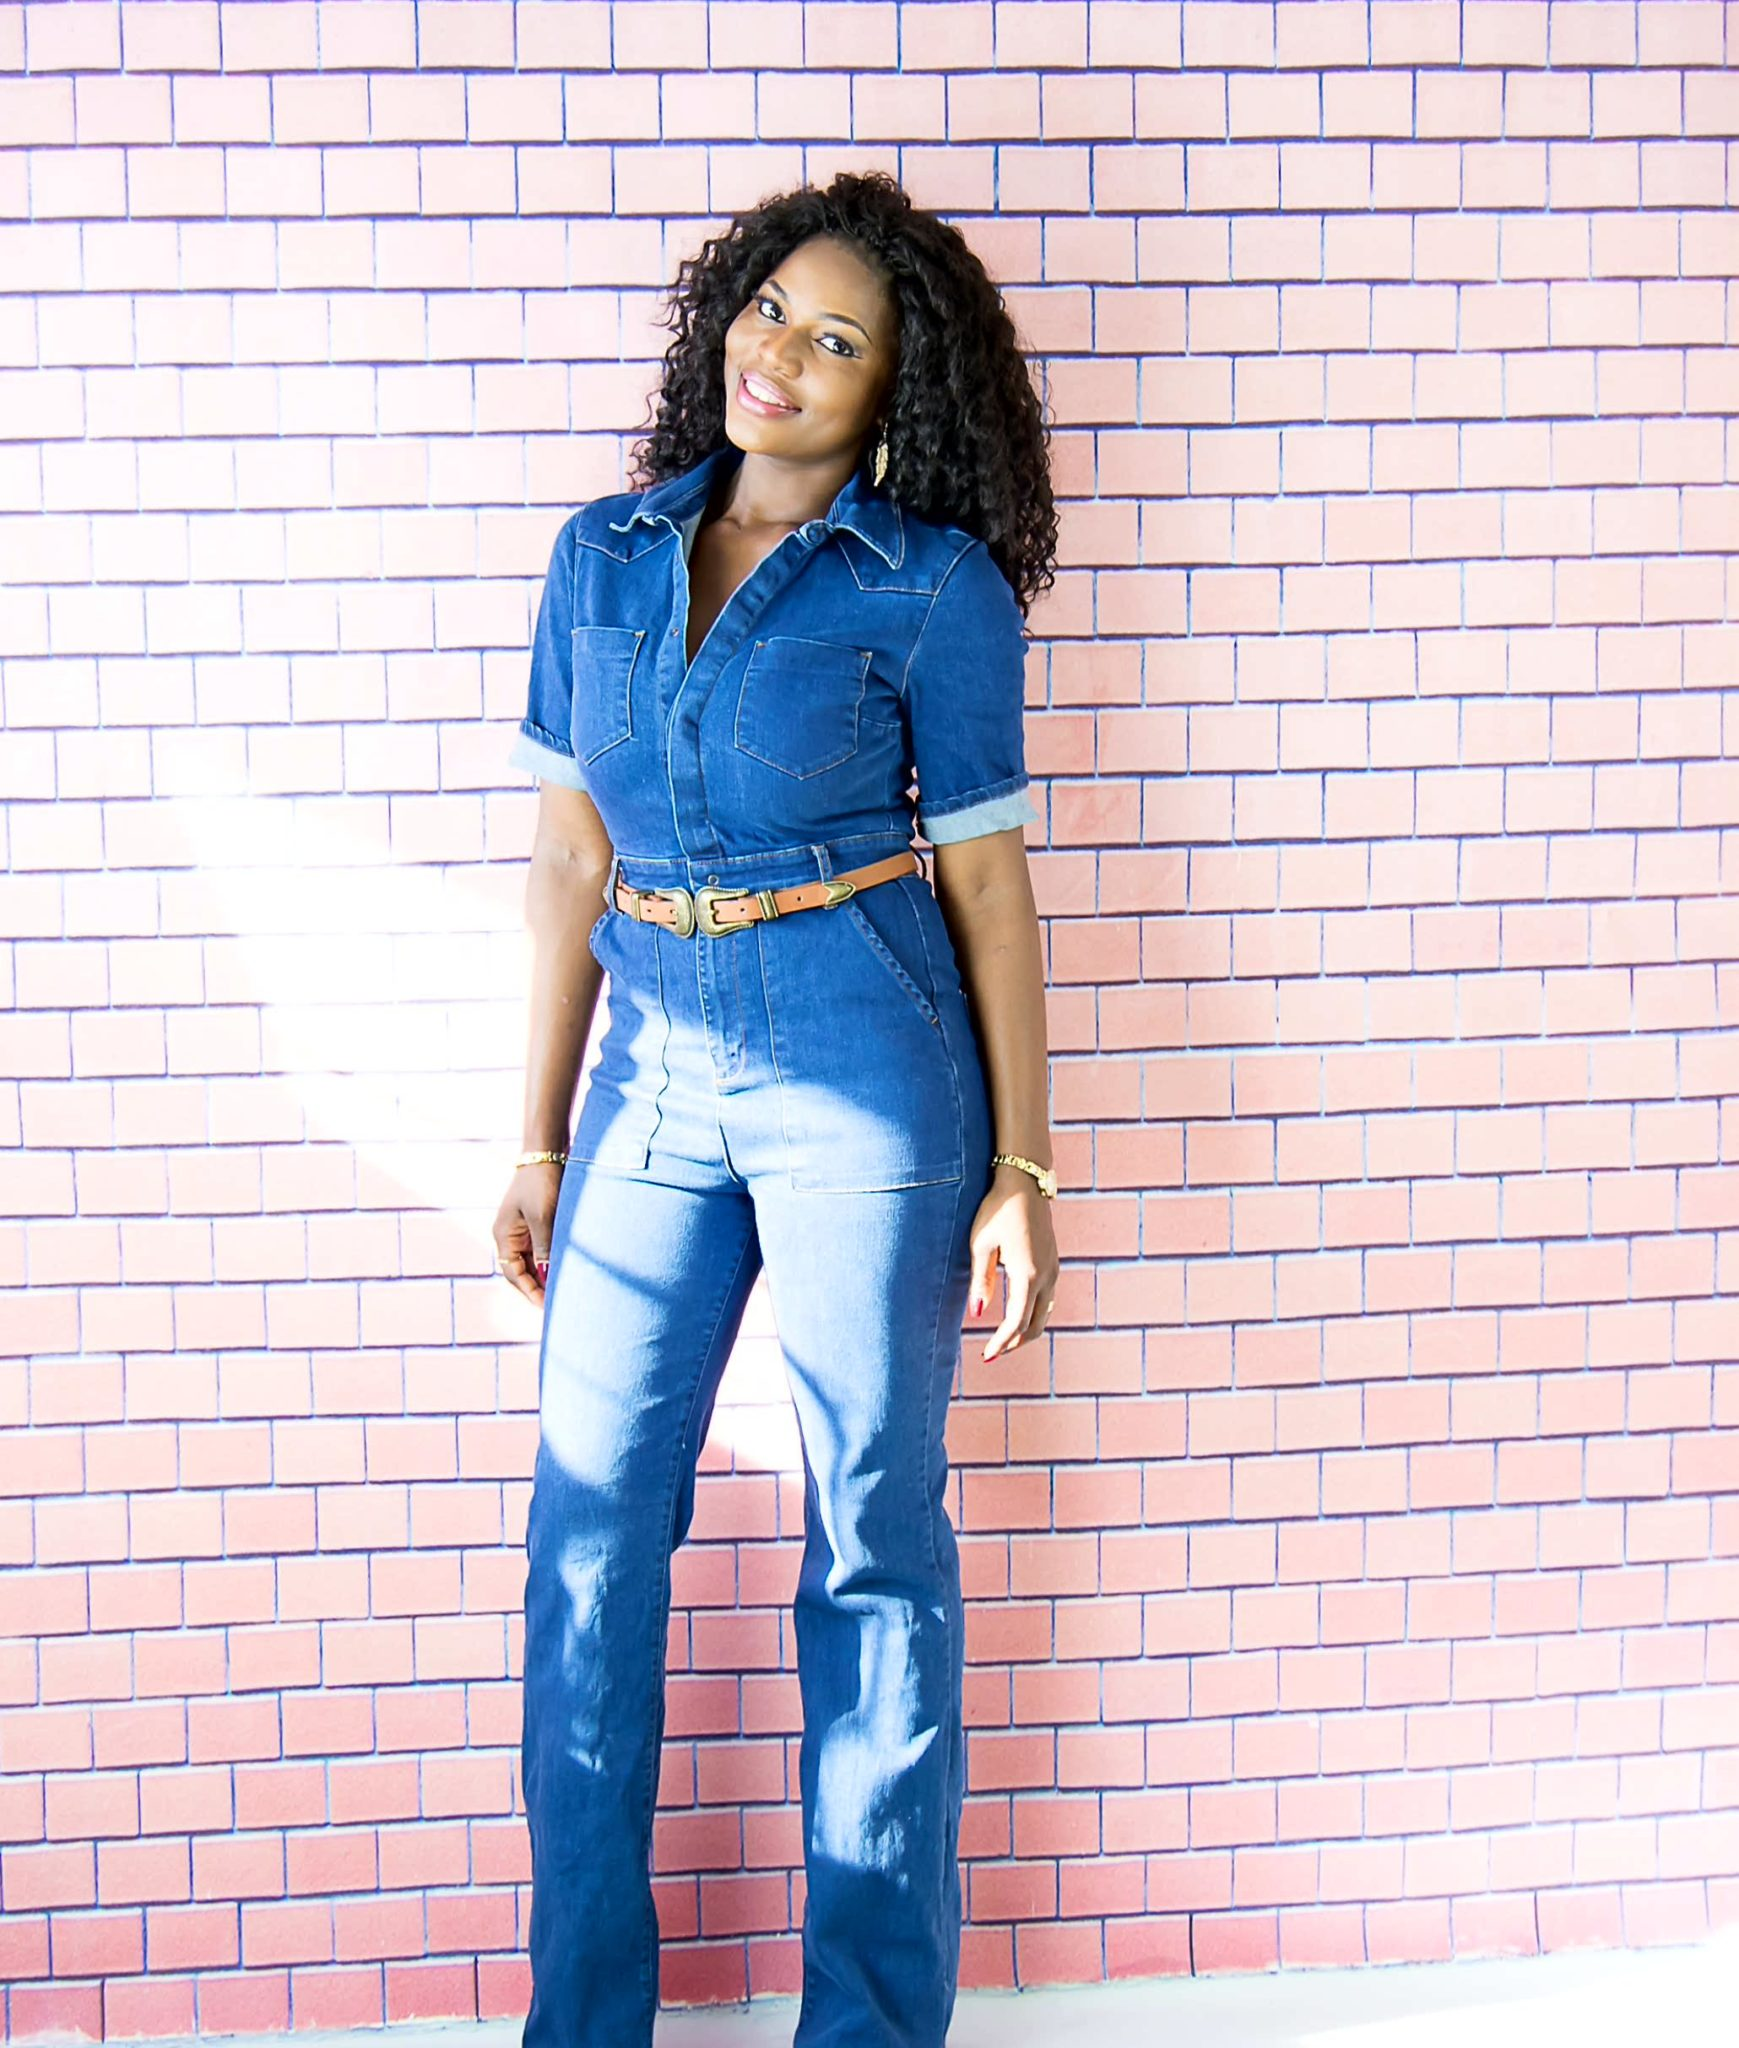 All-in-one Denim jumpsuit - WishfulElegance